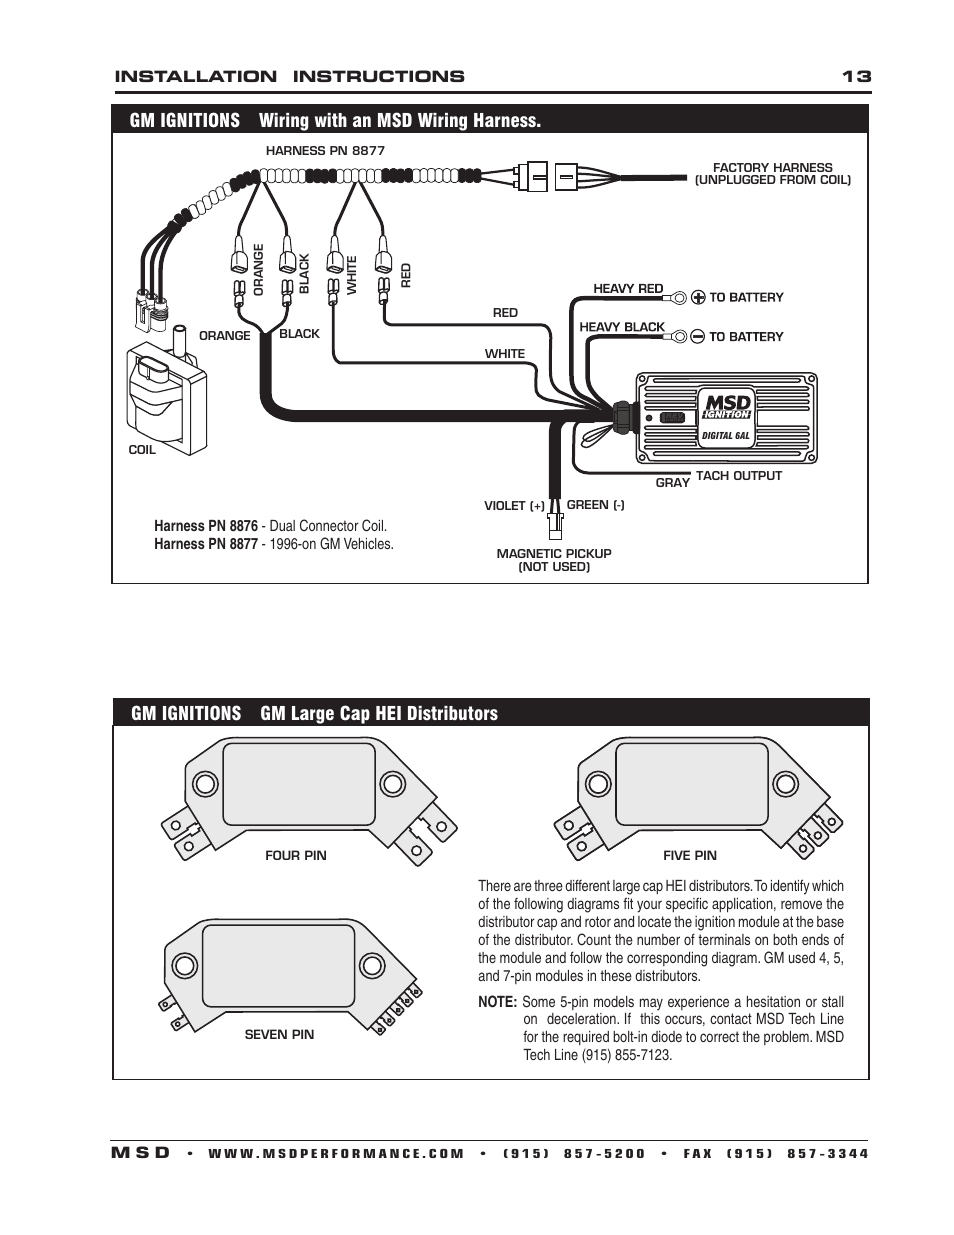 small resolution of msd 6201 digital 6a ignition control page13 resize